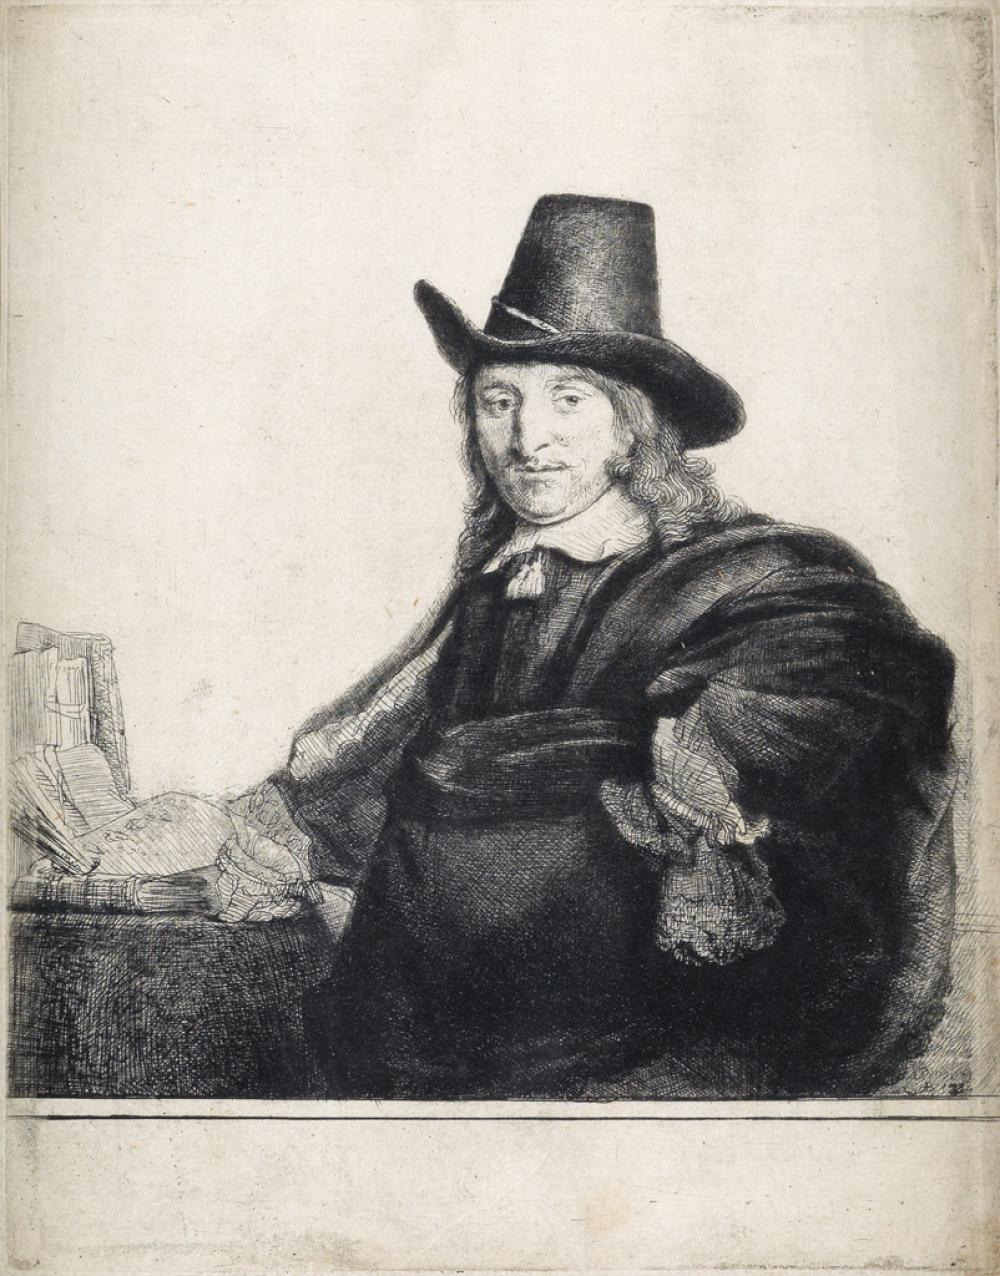 REMBRANDT VAN RIJN Jan Asselyn, Painter.